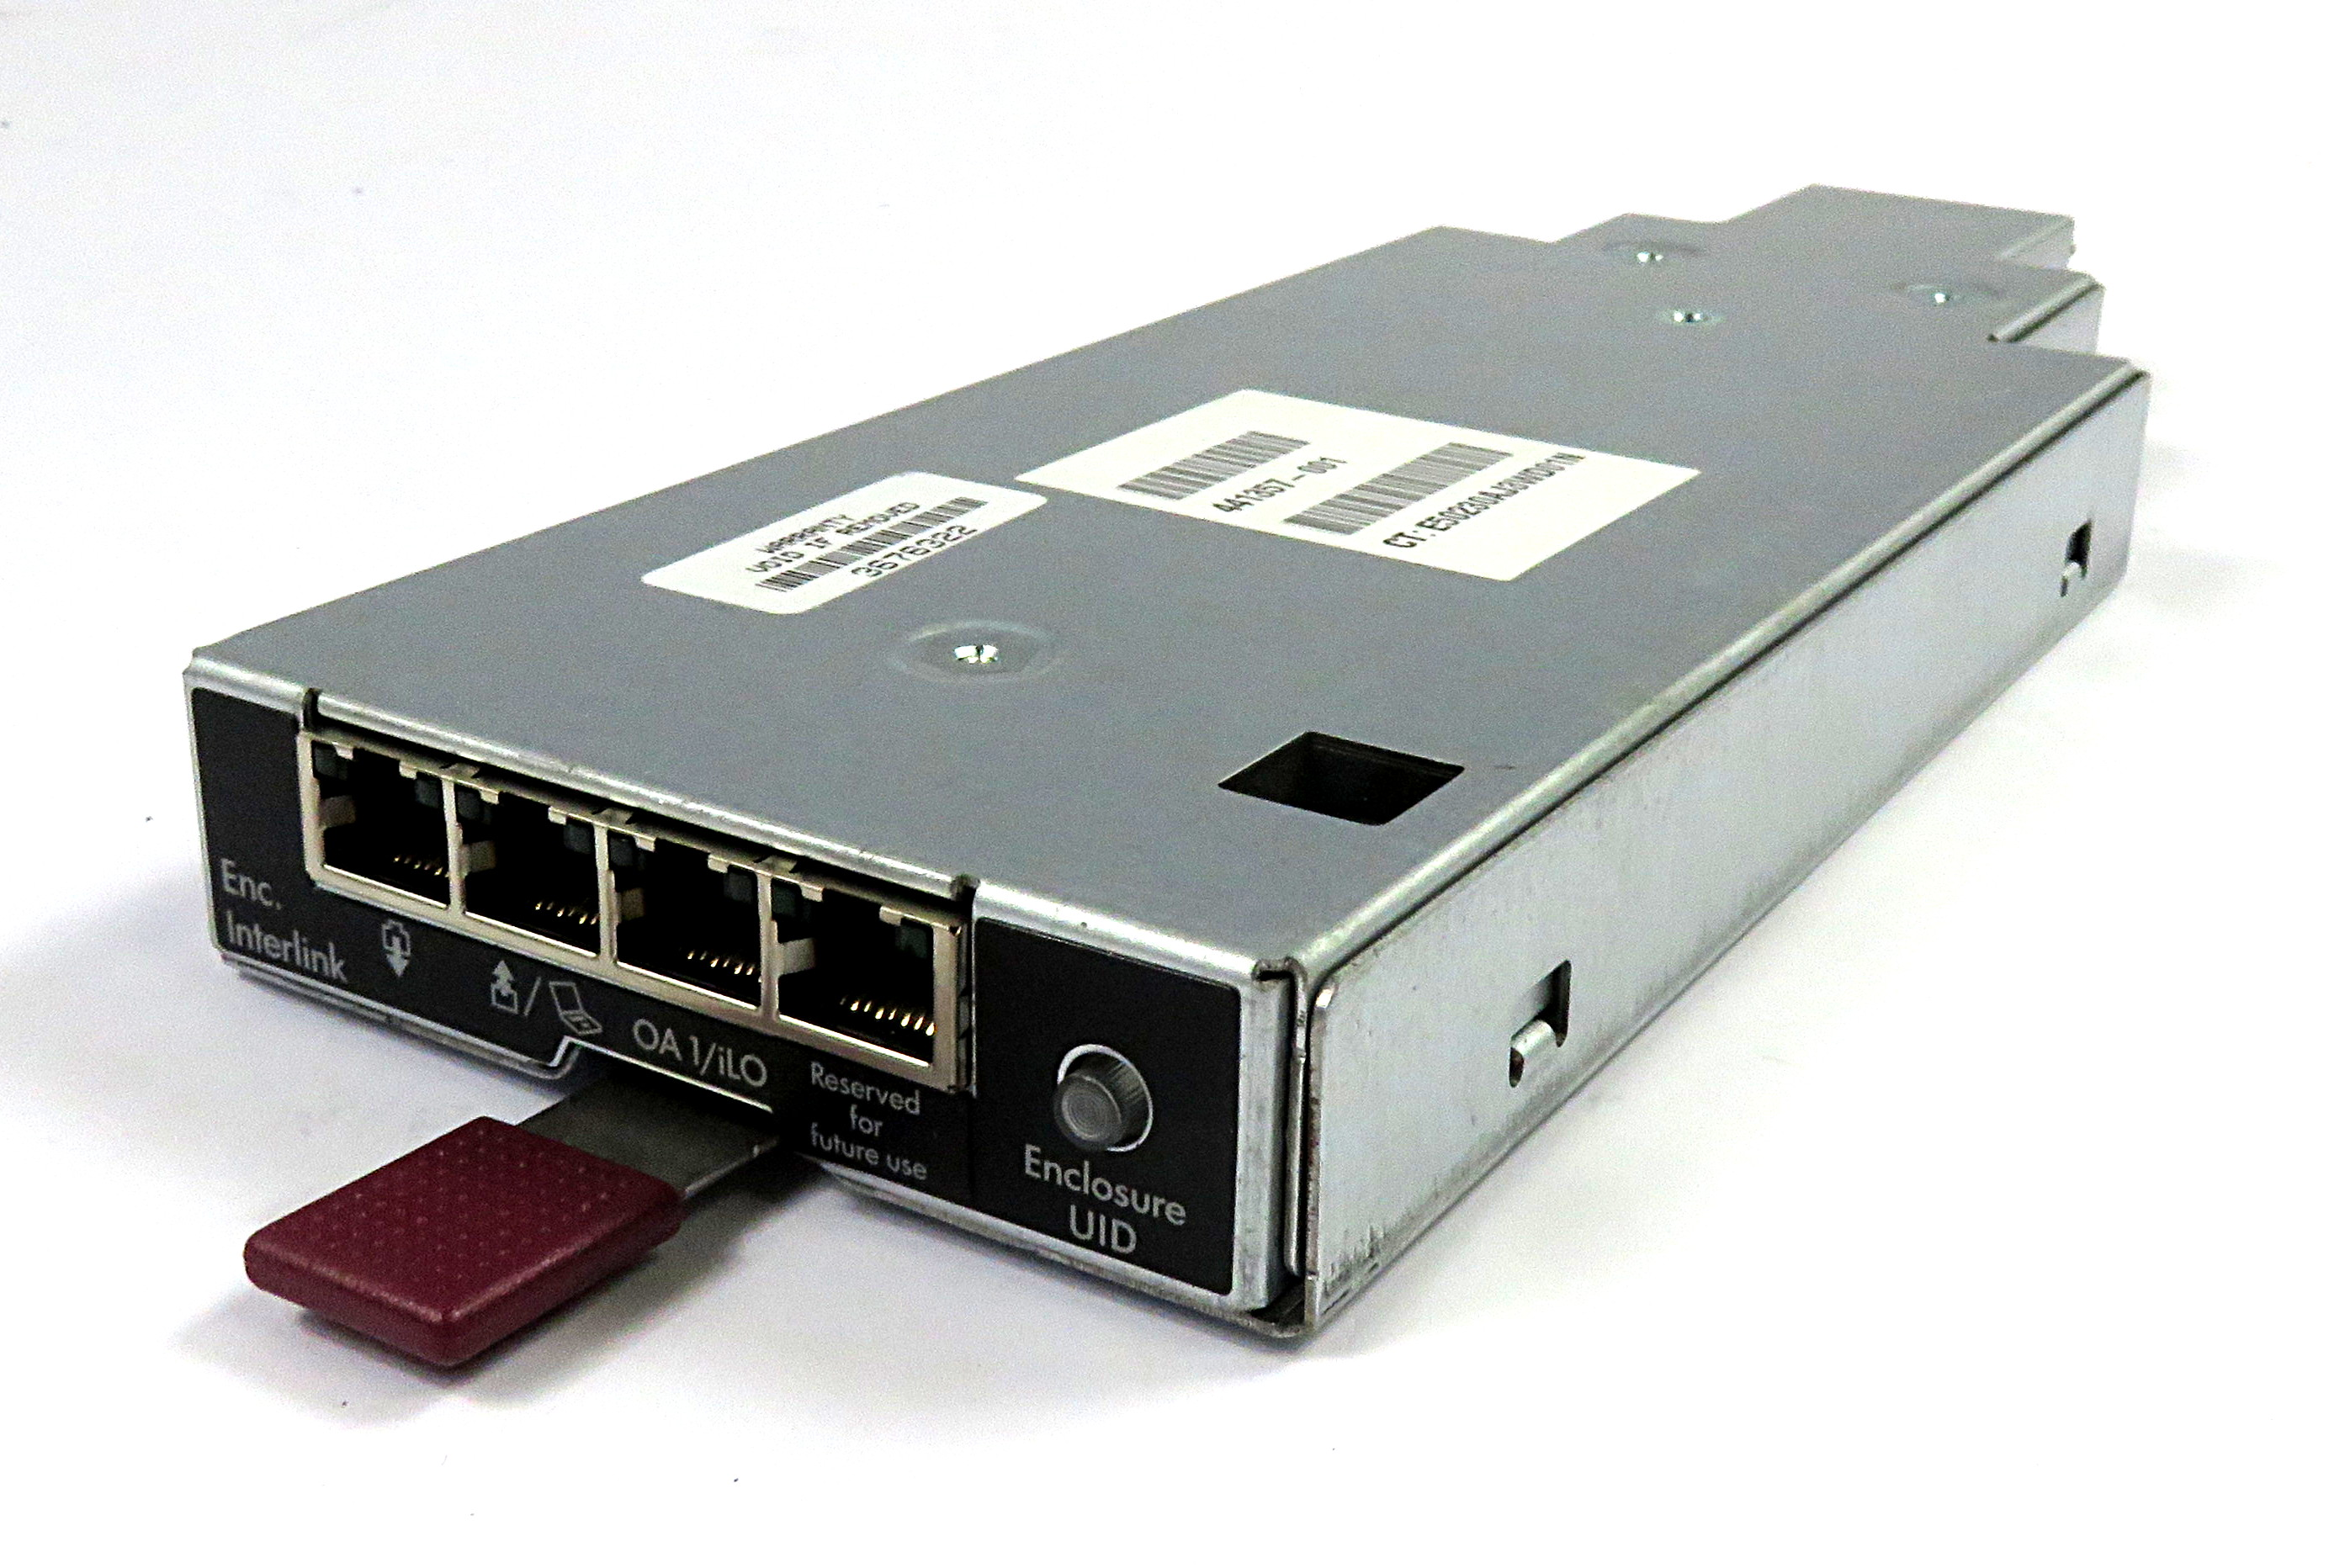 HP 441357-001 Onboard Administrator Interlink Module for BLc3000